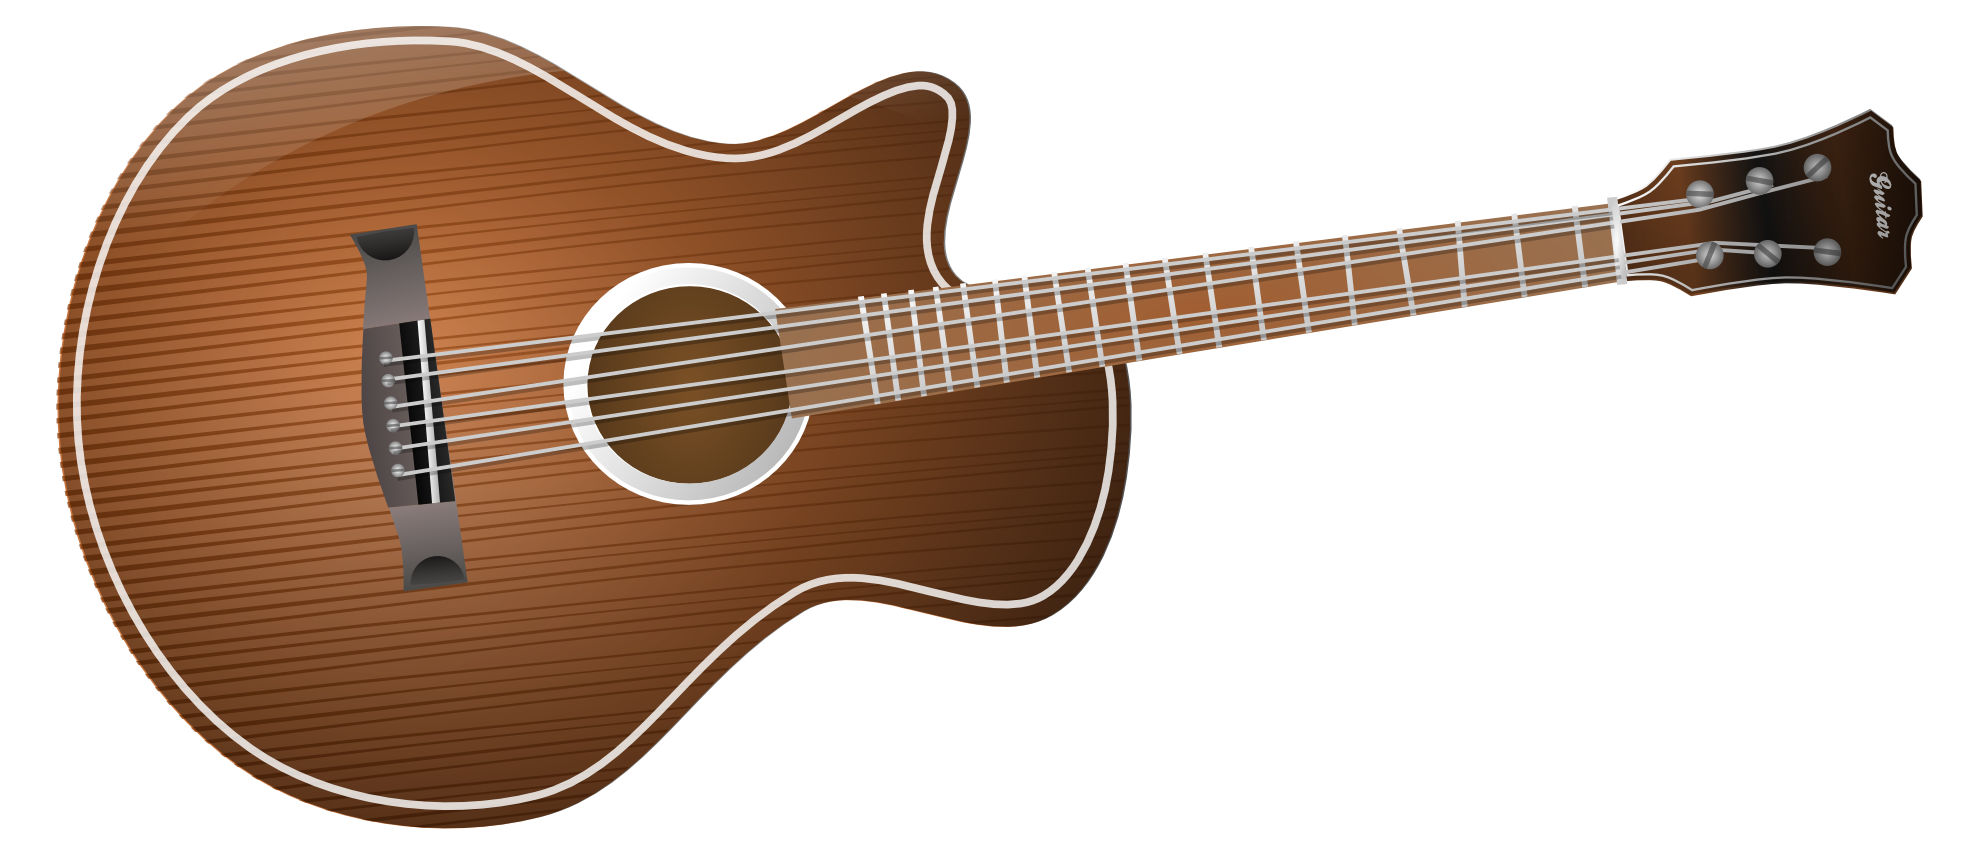 vector royalty free Guitar clipart rockabilly. Png image